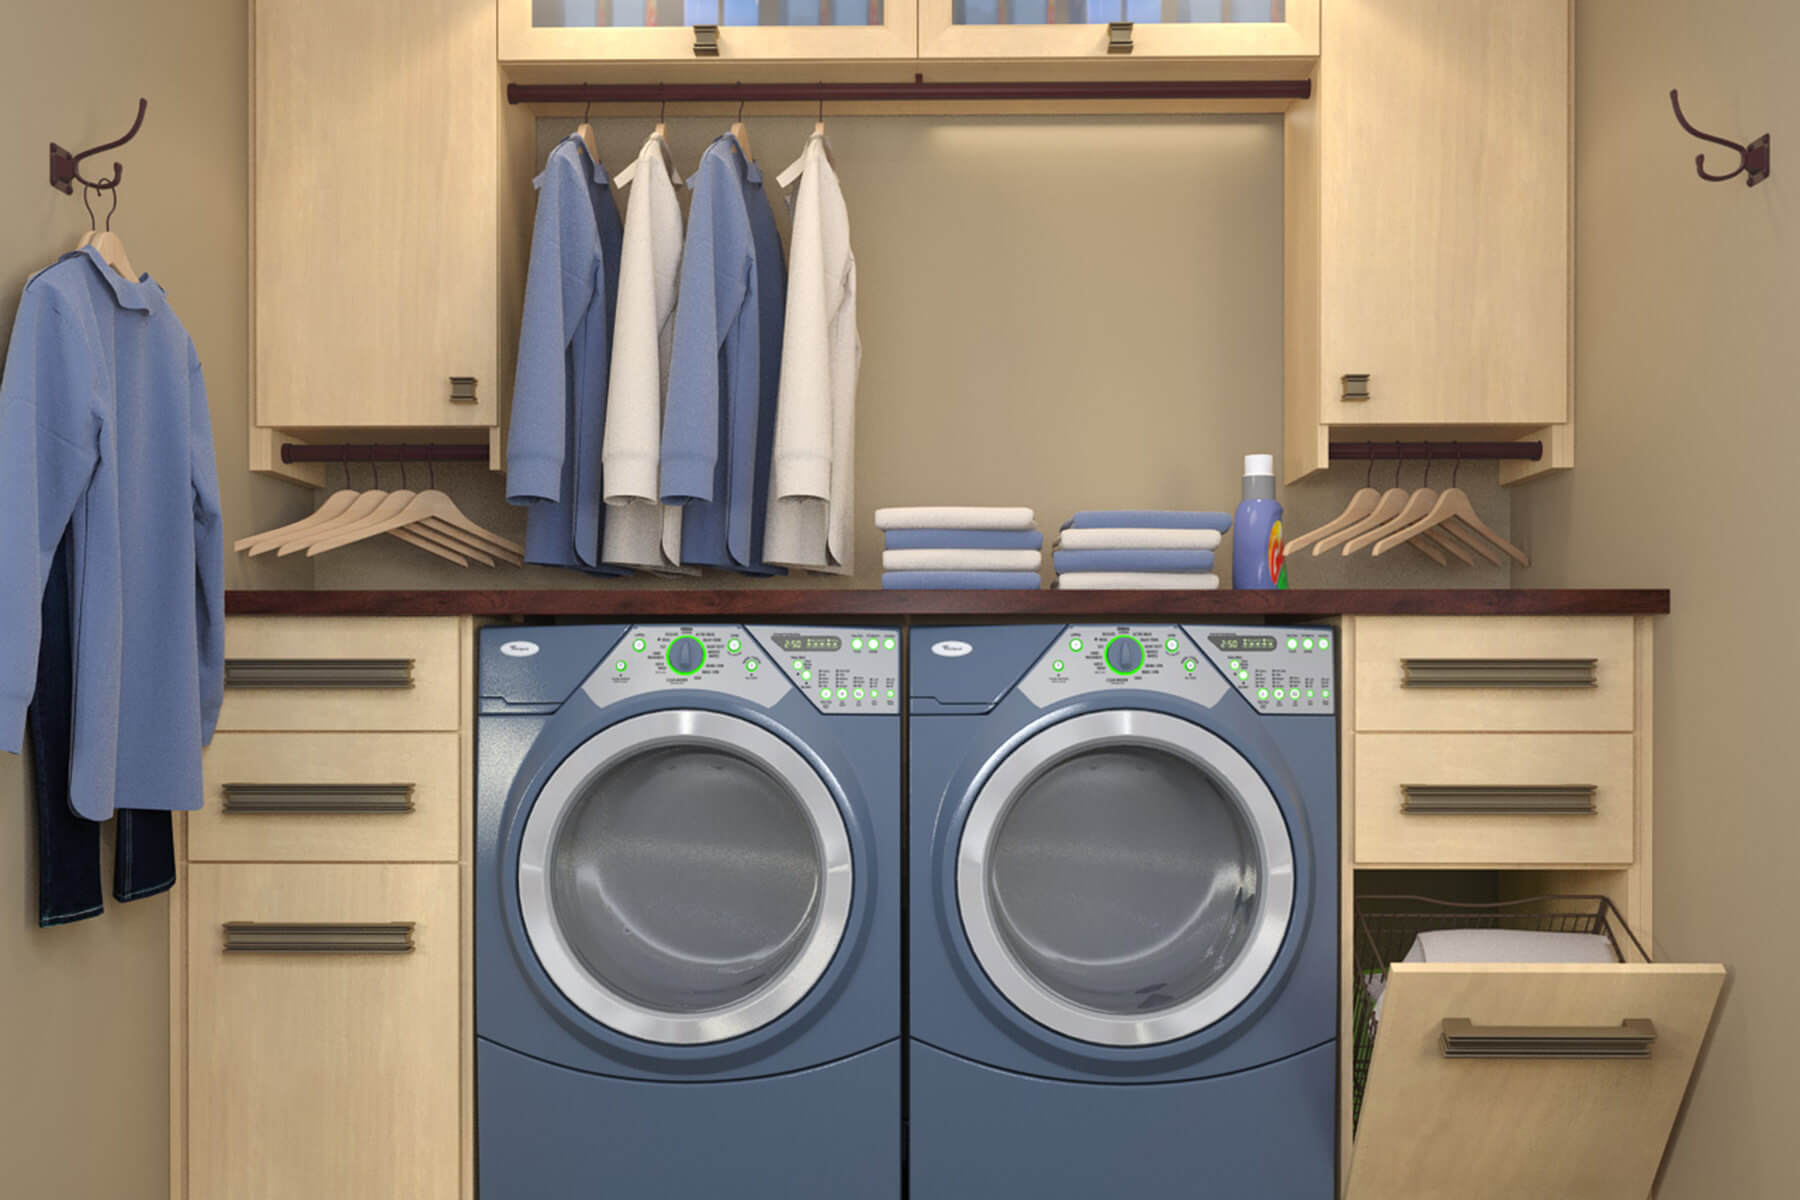 A small sized space is maximized with a functional laundry design such as tip out drawers with trays and two symmetrical wall hooks. This also has a few cabinet storage areas and hanger rods.